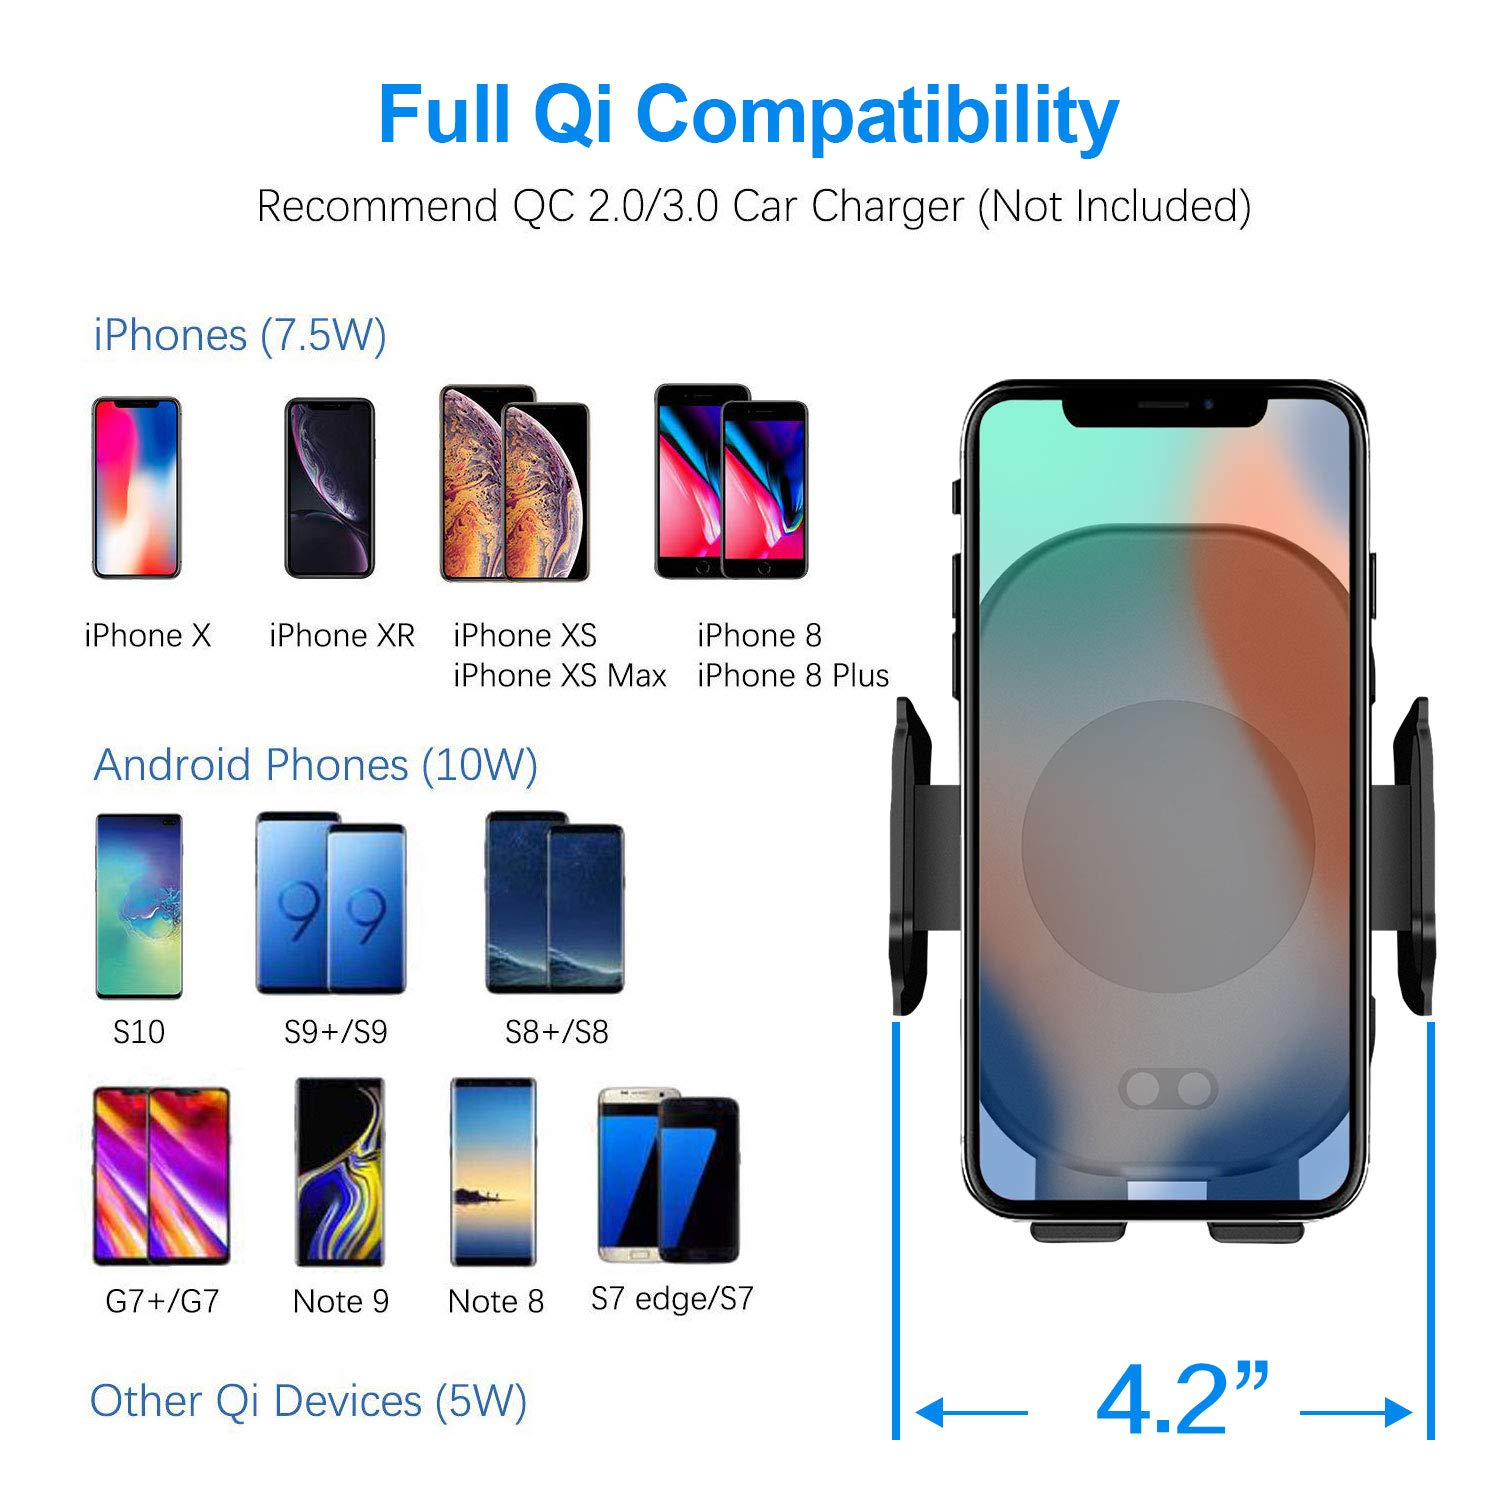 Windshield Dashboard Air Vent Phone Mount Compatible with iPhone X Xs Max Xr 8 Infrared Automatic Clamping Qi 10W 7.5W Fast Charger car Mount Samsung S10 S9 S8 Note9 Wireless Car Charger Mount